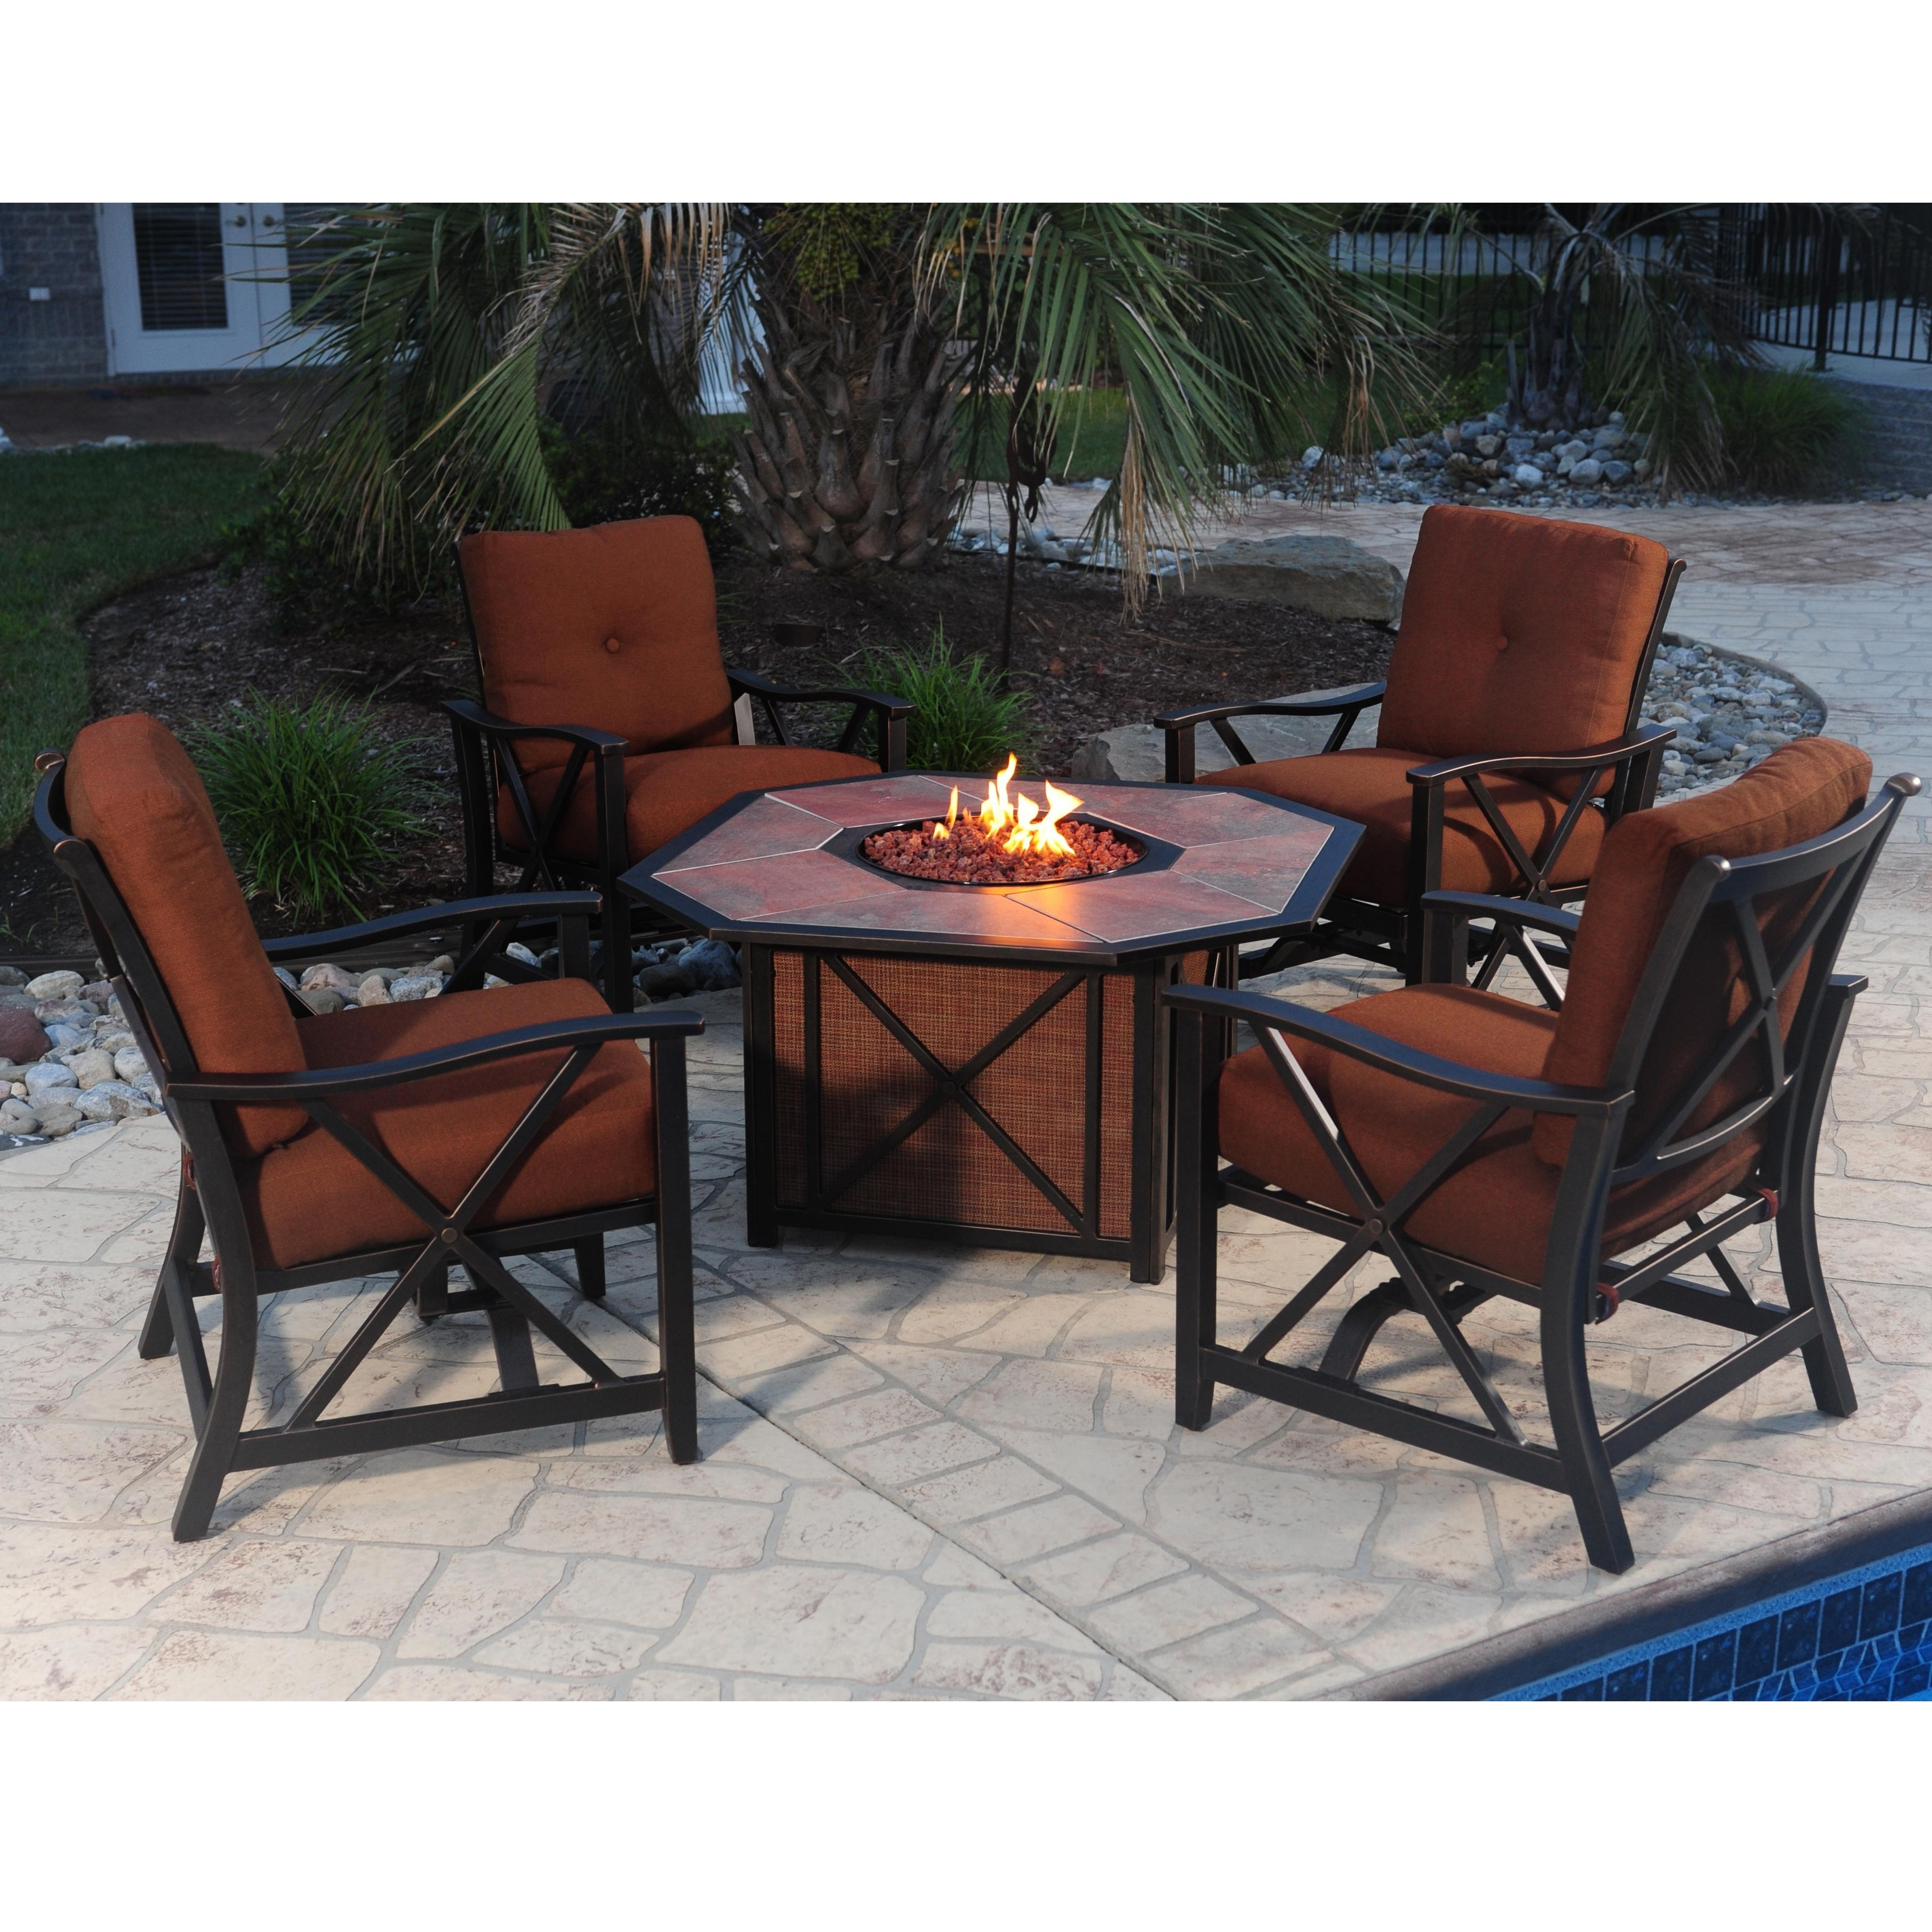 Agio Haywood 5 Piece Outdoor Fire Pit Set With Aluminum Stationary Pertaining To Most Up To Date Outdoor Patio Furniture Conversation Sets (View 3 of 20)